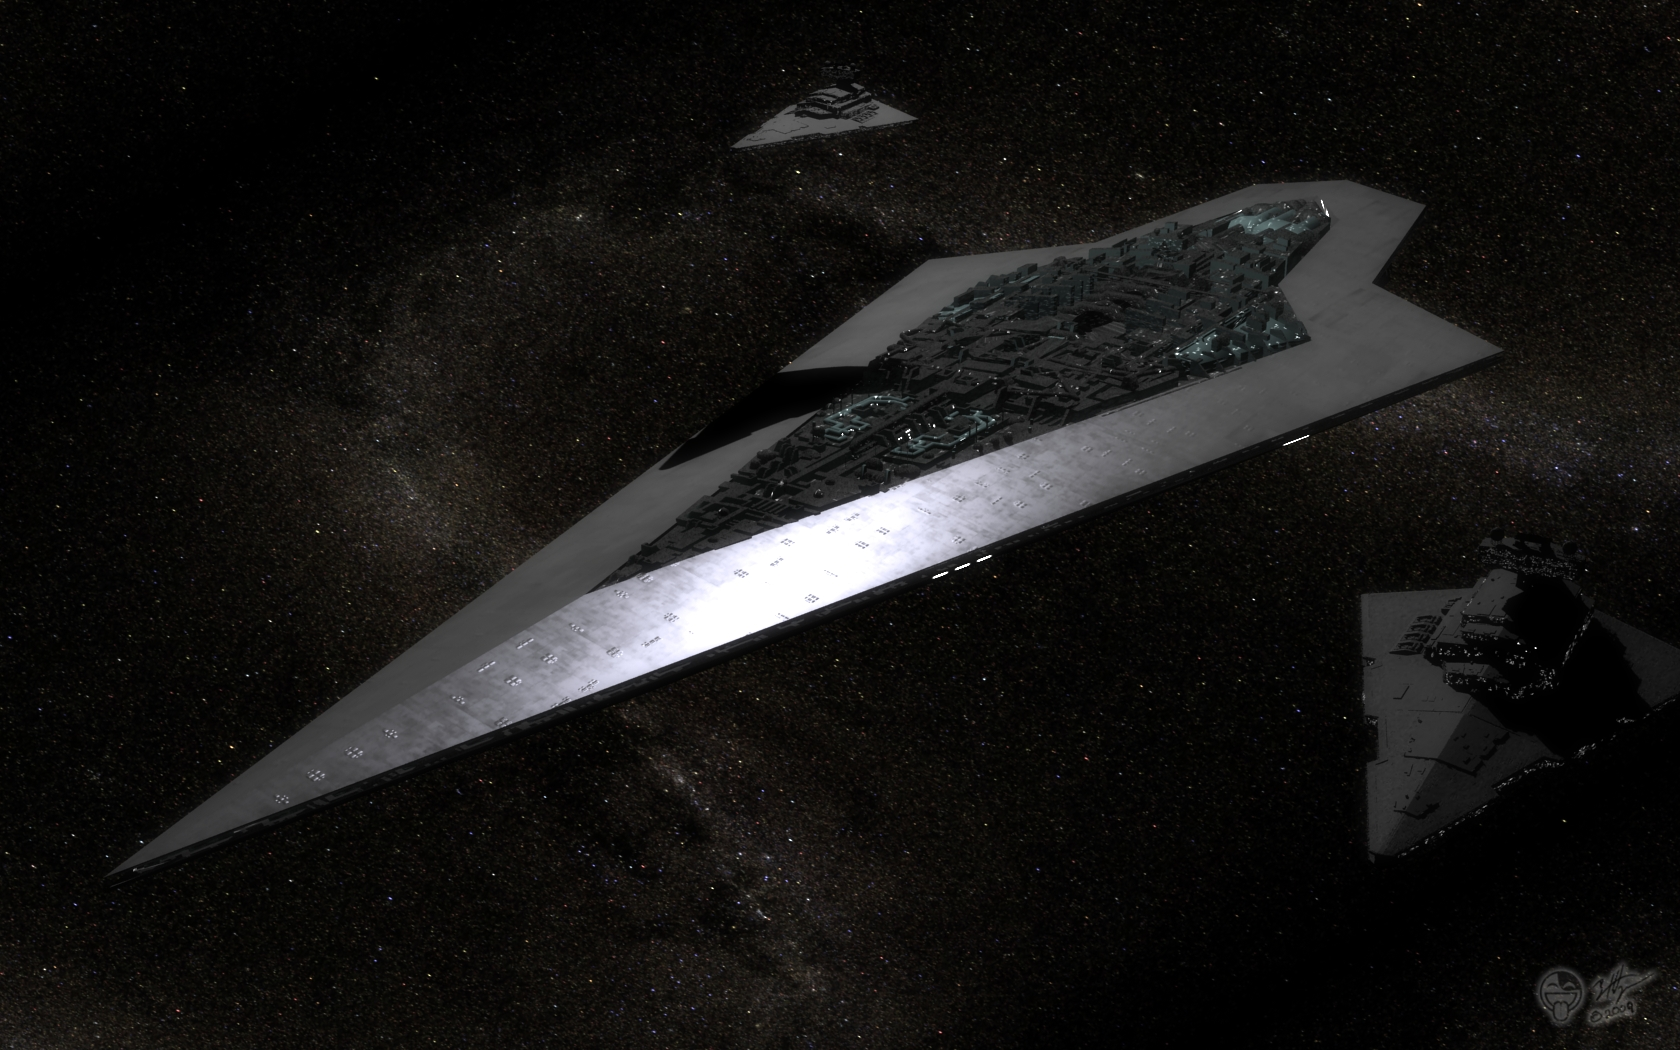 Sci Fi - Star Wars  - Super Star Destroyer - Executor Wallpaper